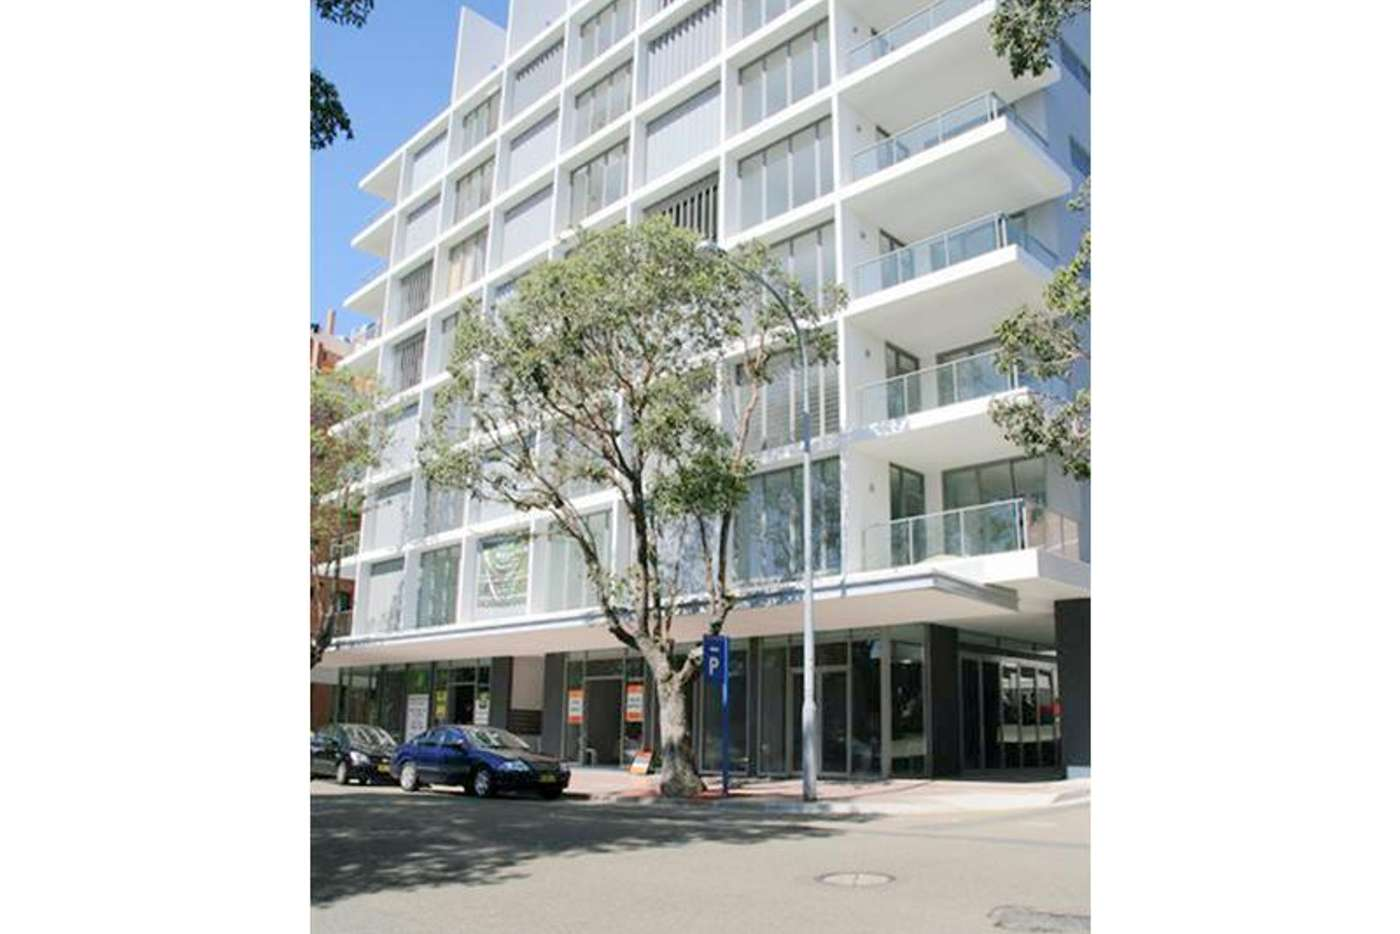 Main view of Homely apartment listing, 14/18 Market St, Rockdale NSW 2216